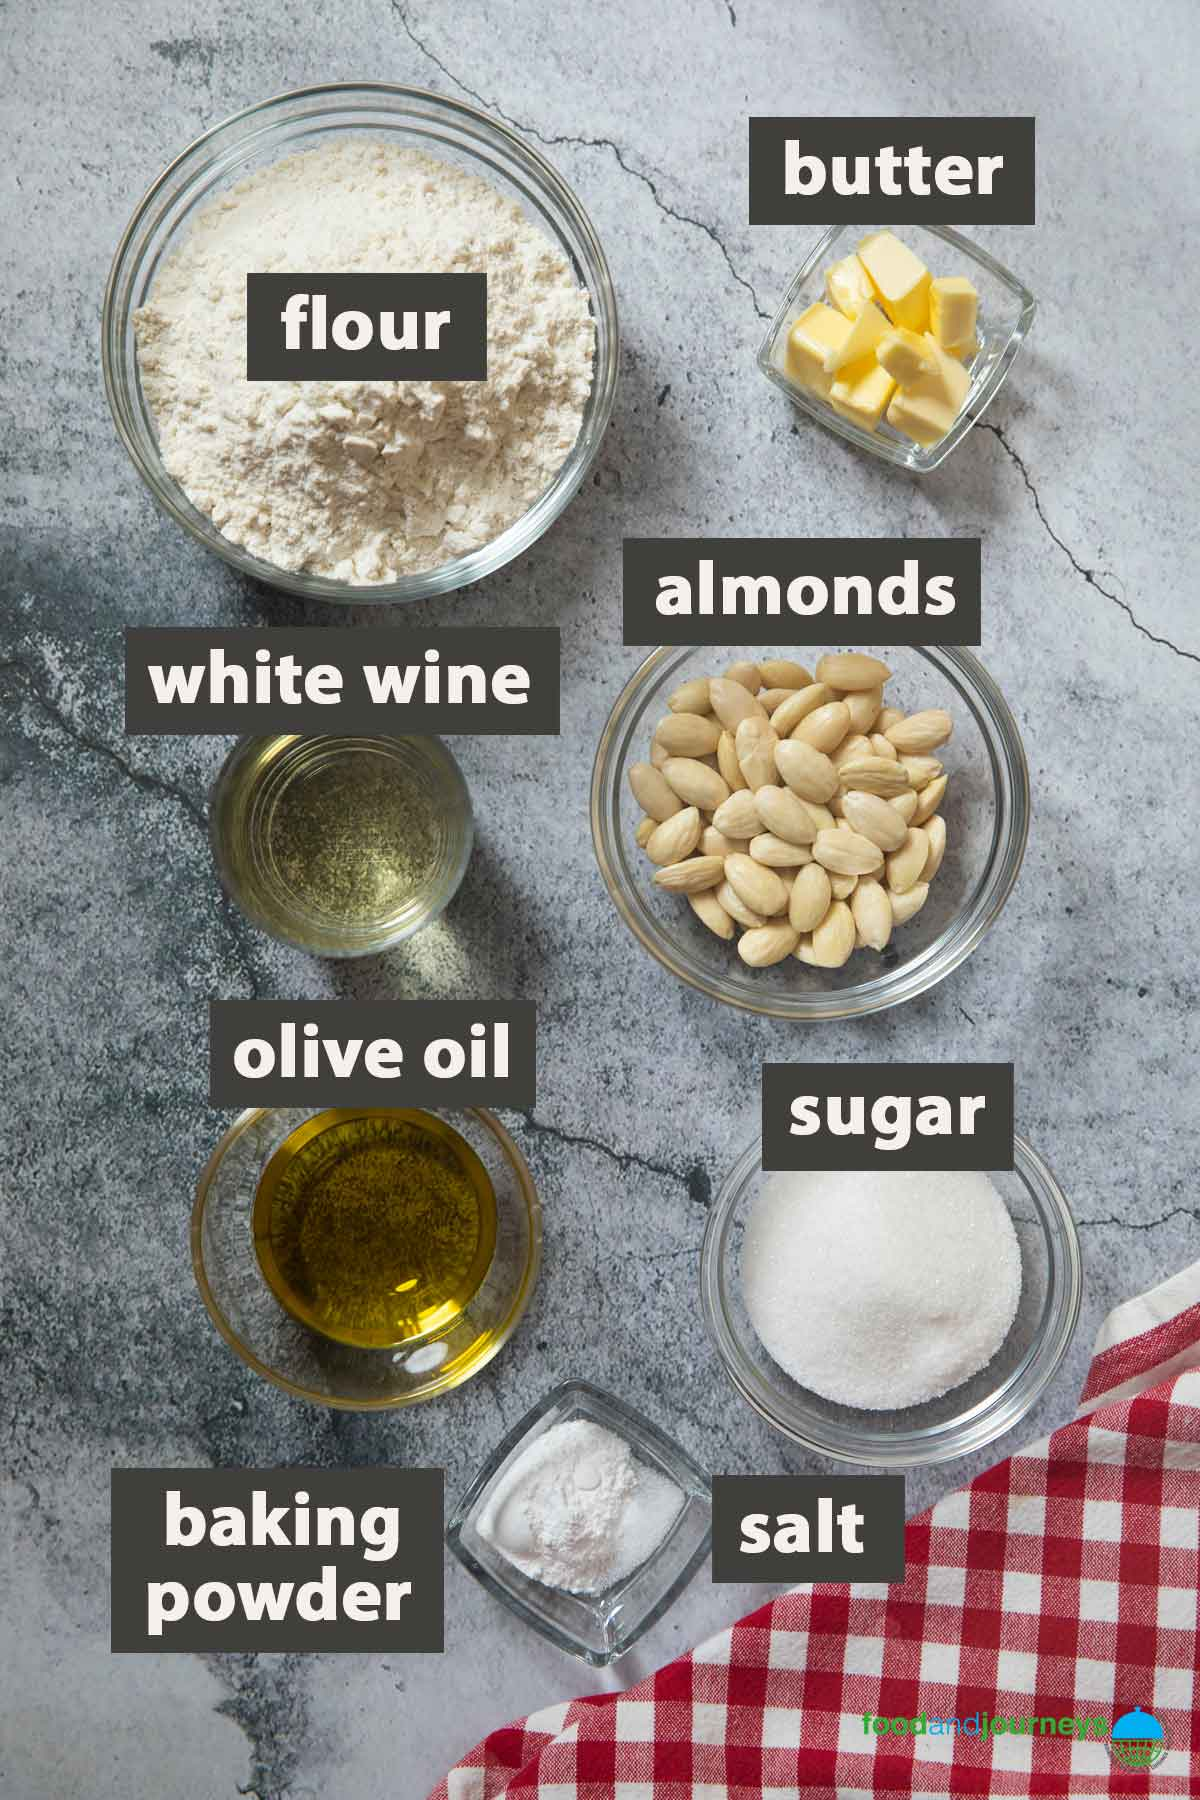 An image showing all the ingredients you need to prepare almond cookie twists.